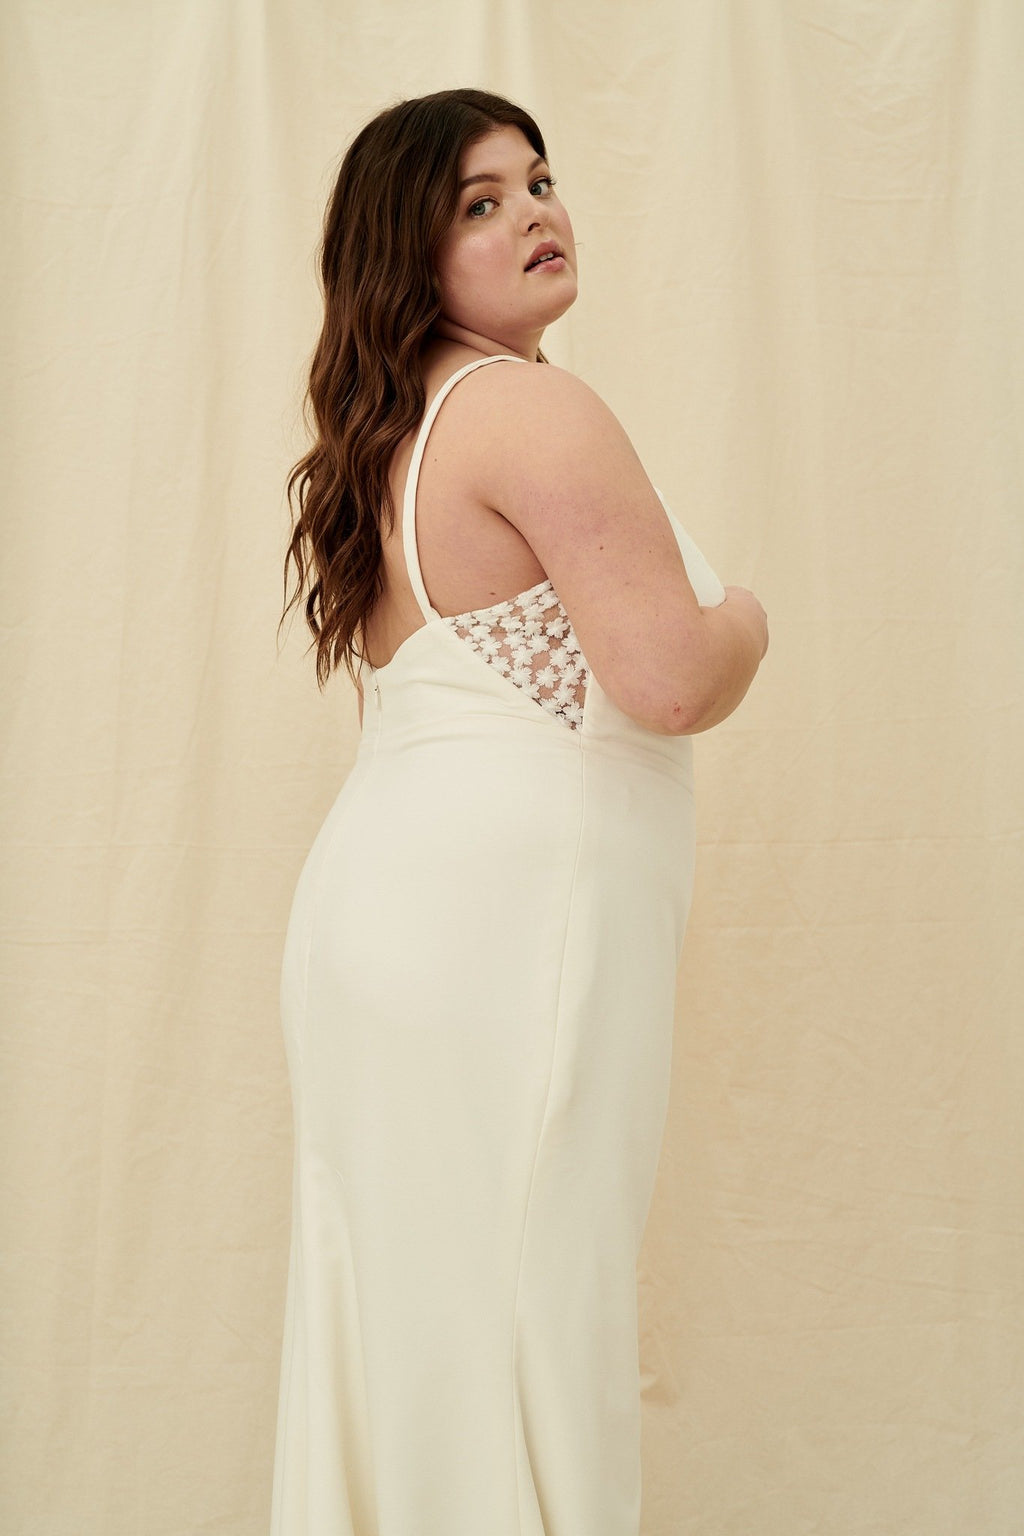 Plus size wedding dress boutiques in Vancouver, Calgary